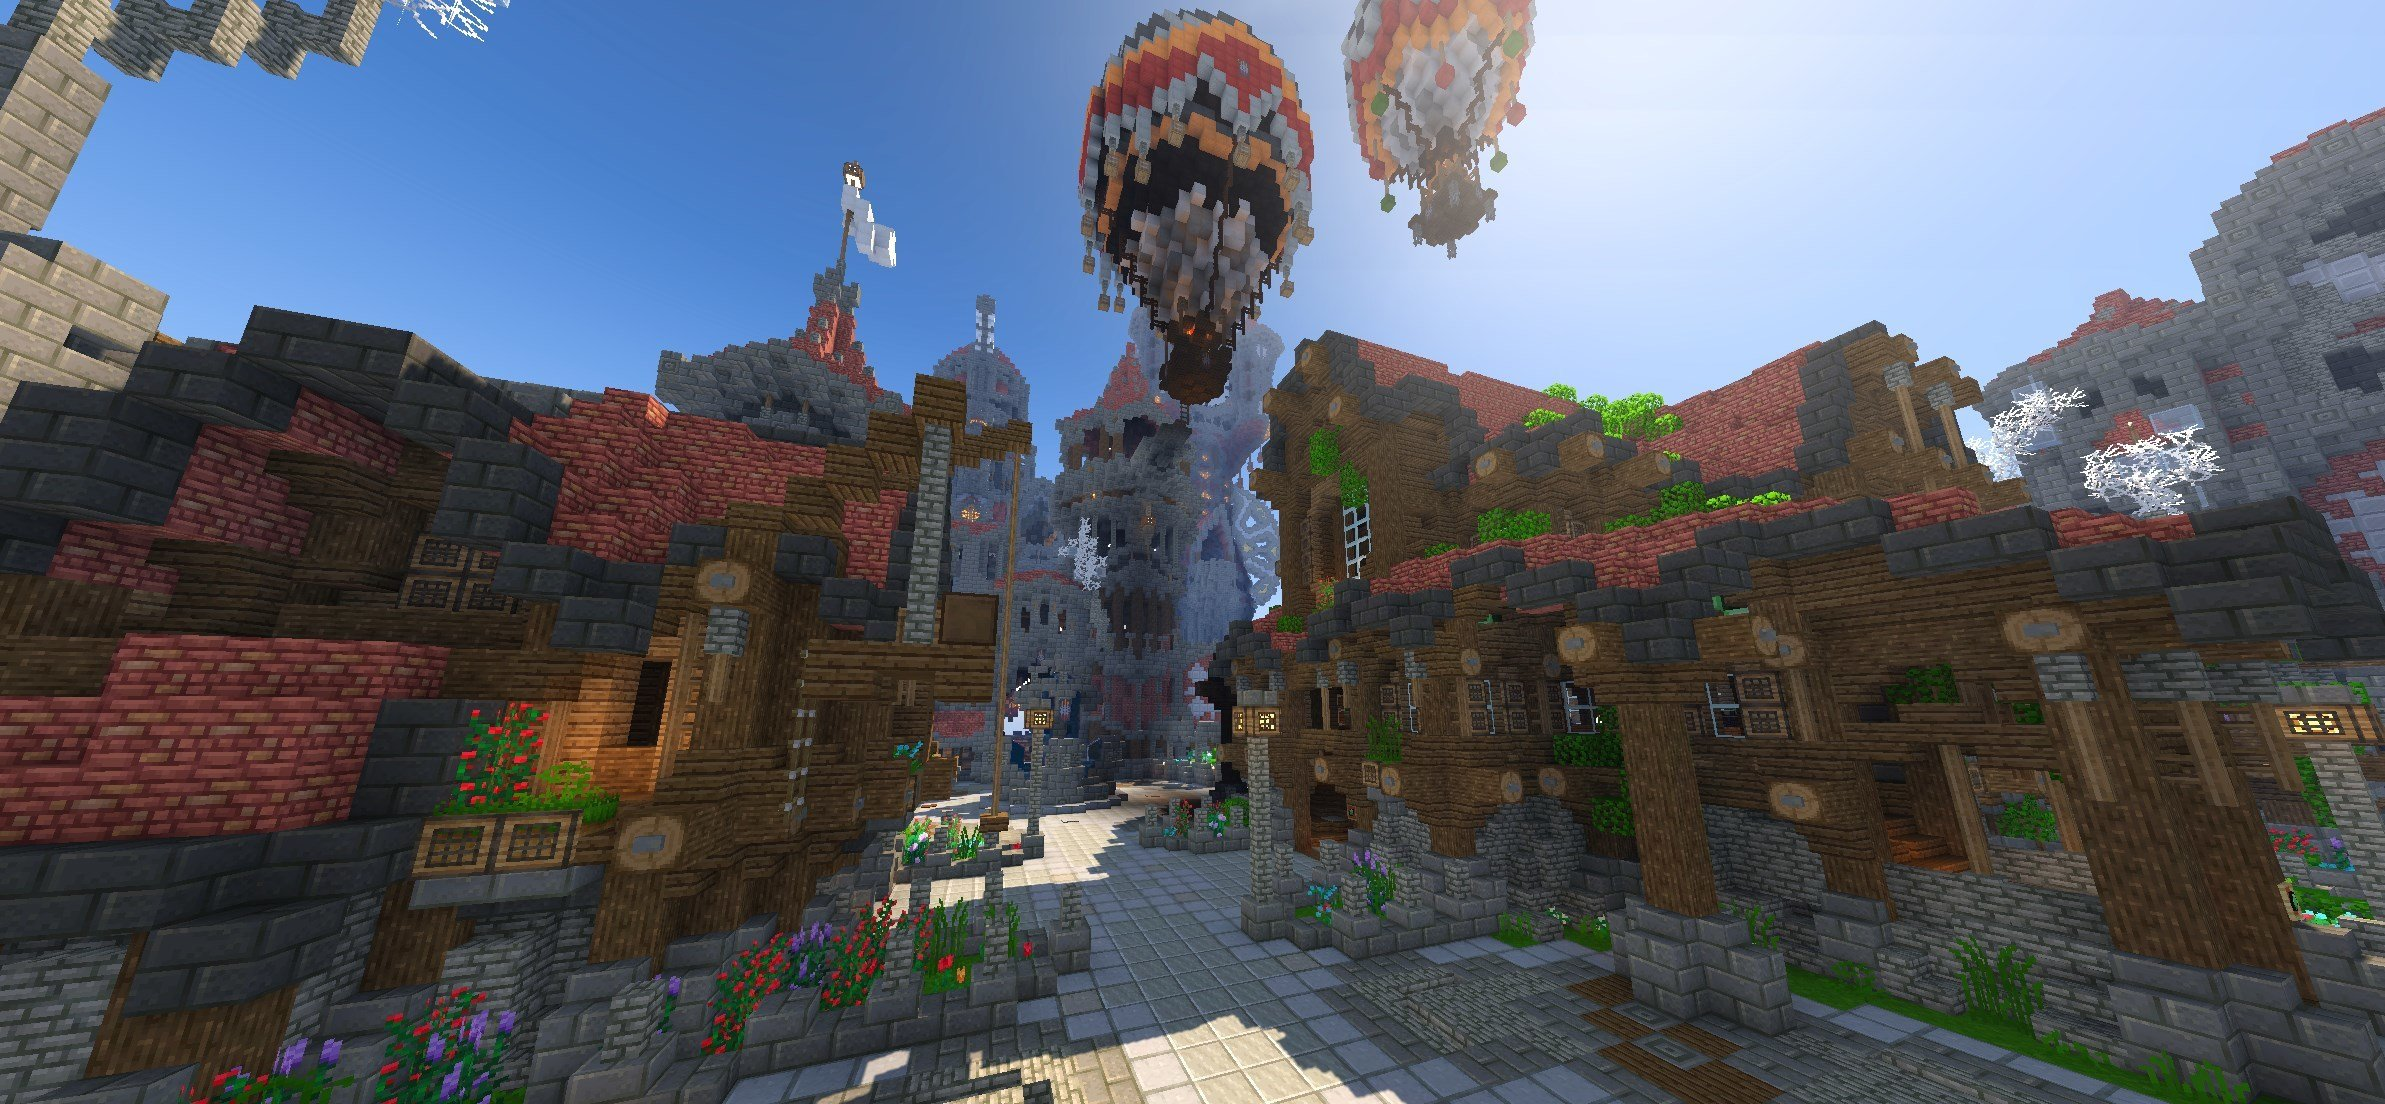 Wynncraft is a full, free fantasy MMO built within Minecraft photo